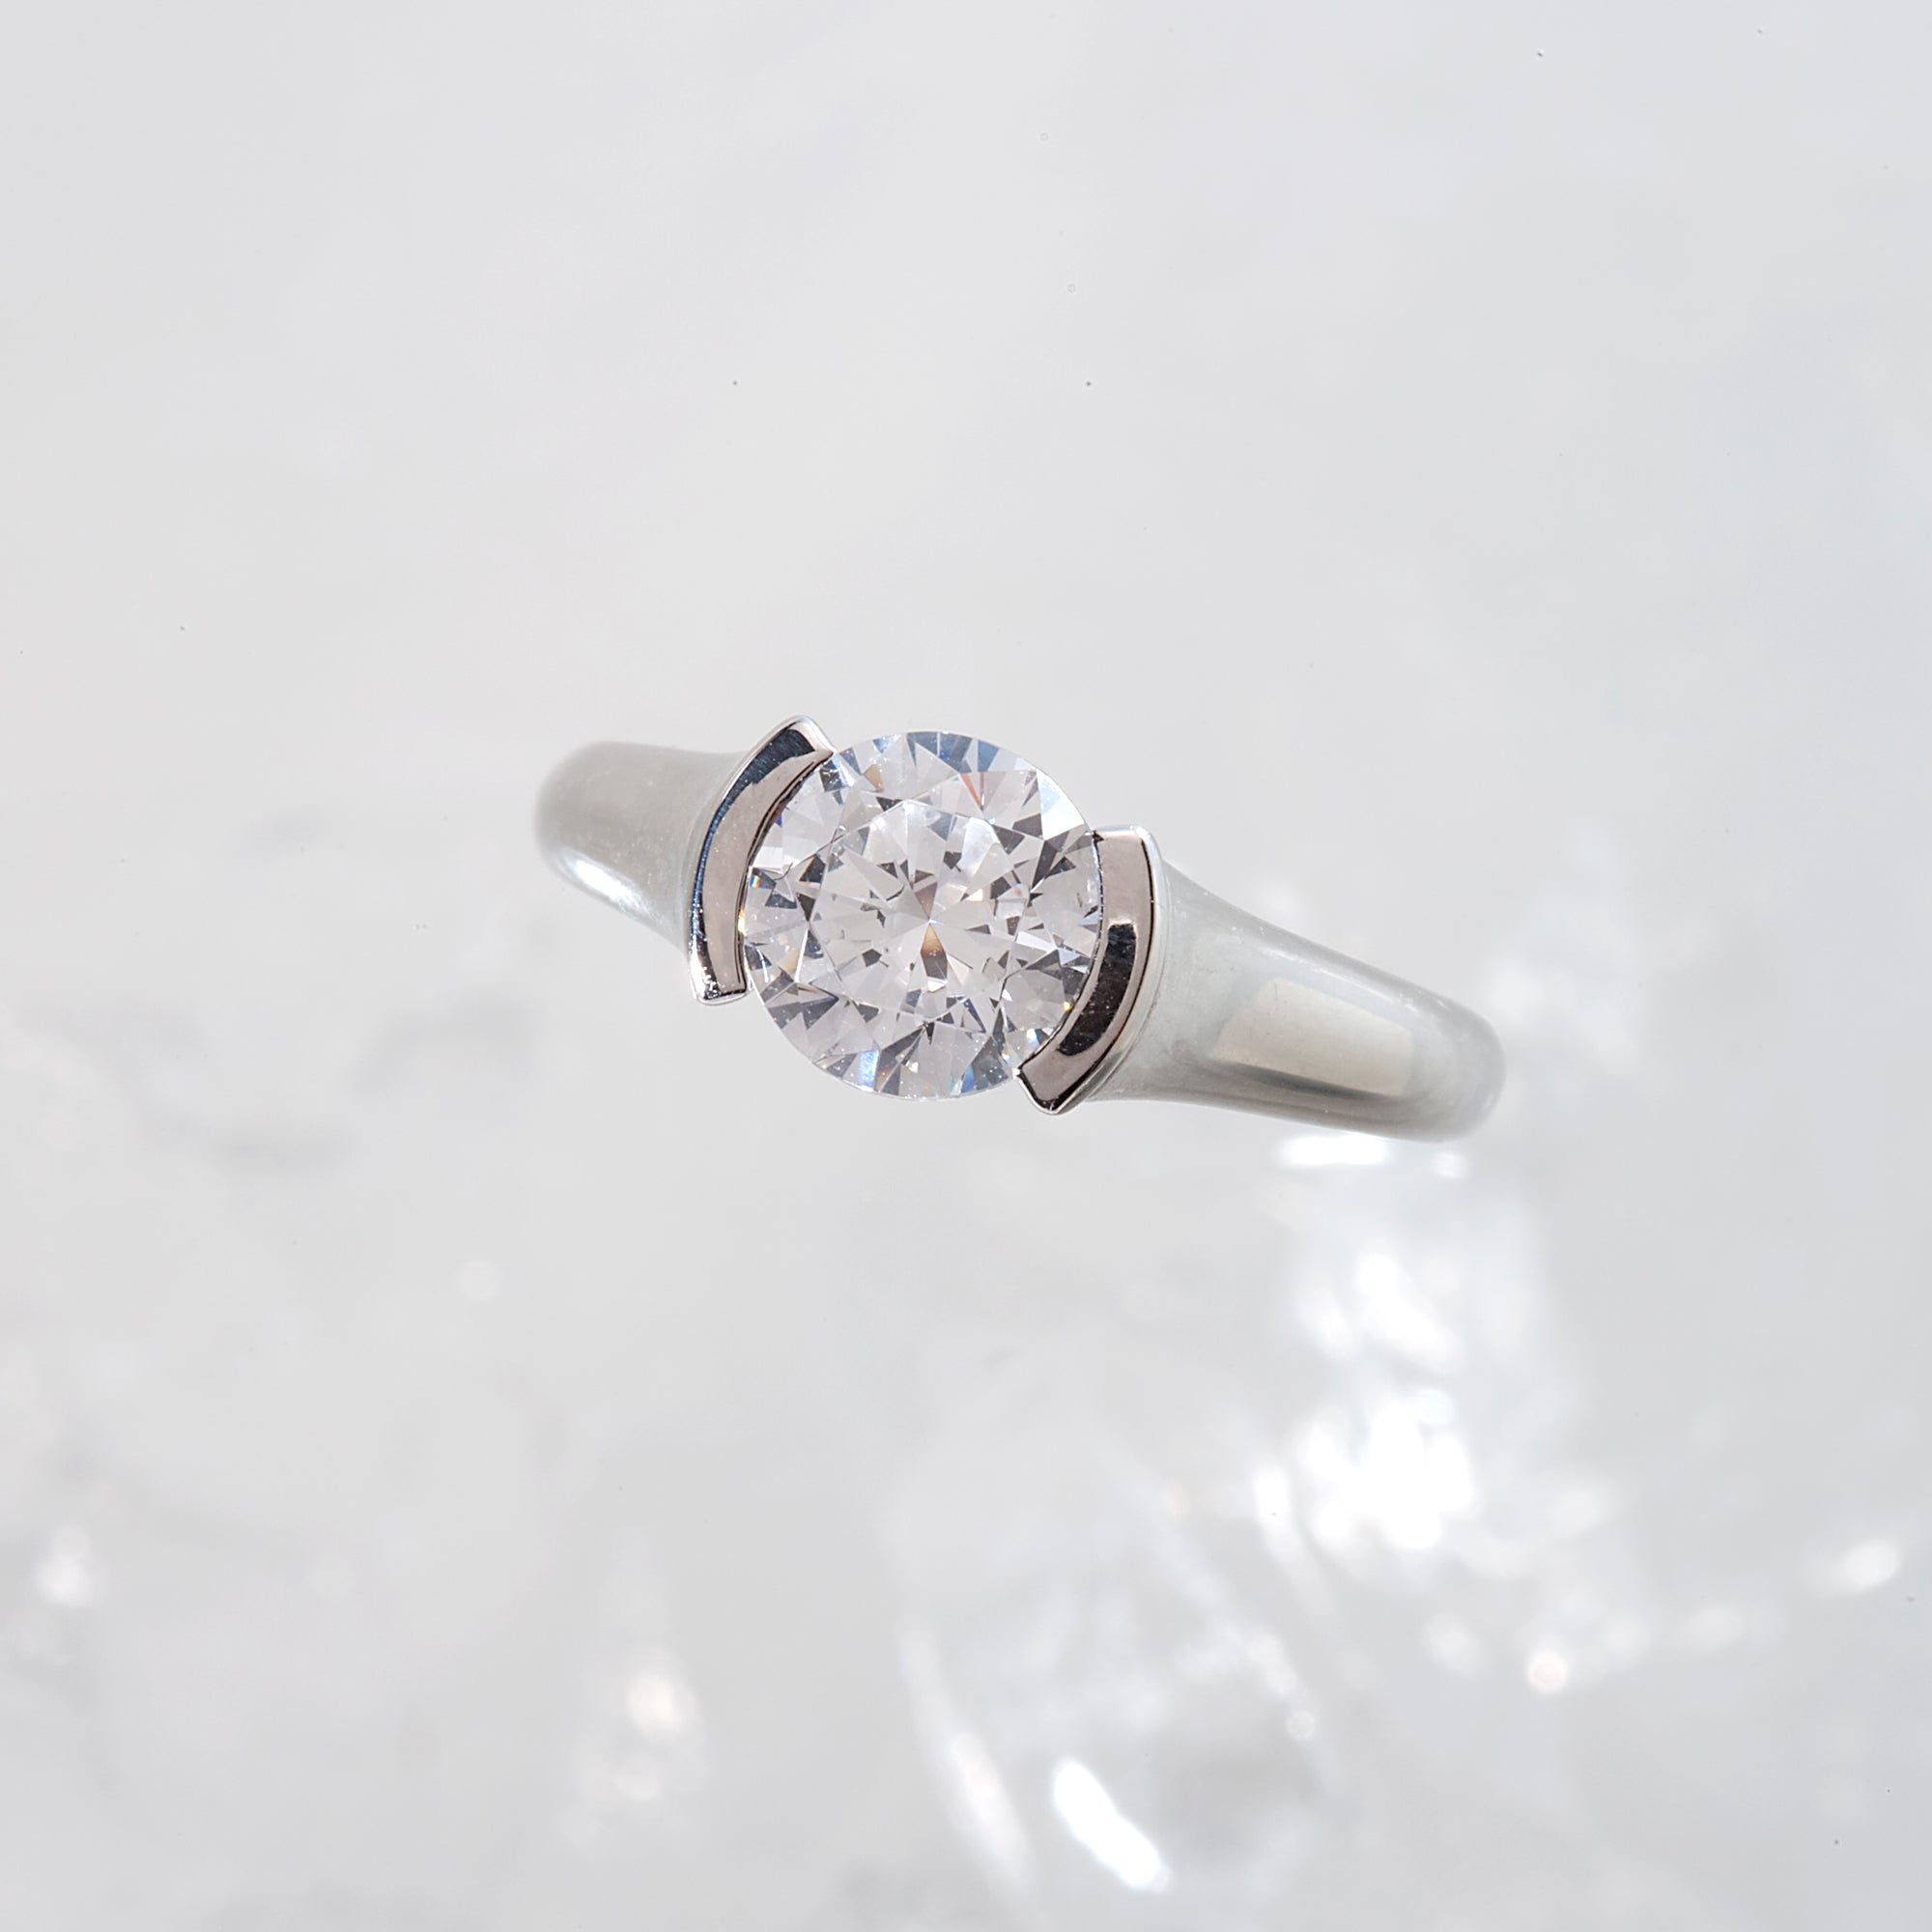 Diamond engagement ring featuring a round brilliant-cut diamond. and channel-set princess-cut diamonds. Custom-made to order for any size diamond or gemstone center stone. Available in 14K or 18K white, yellow, rose gold, and platinum.